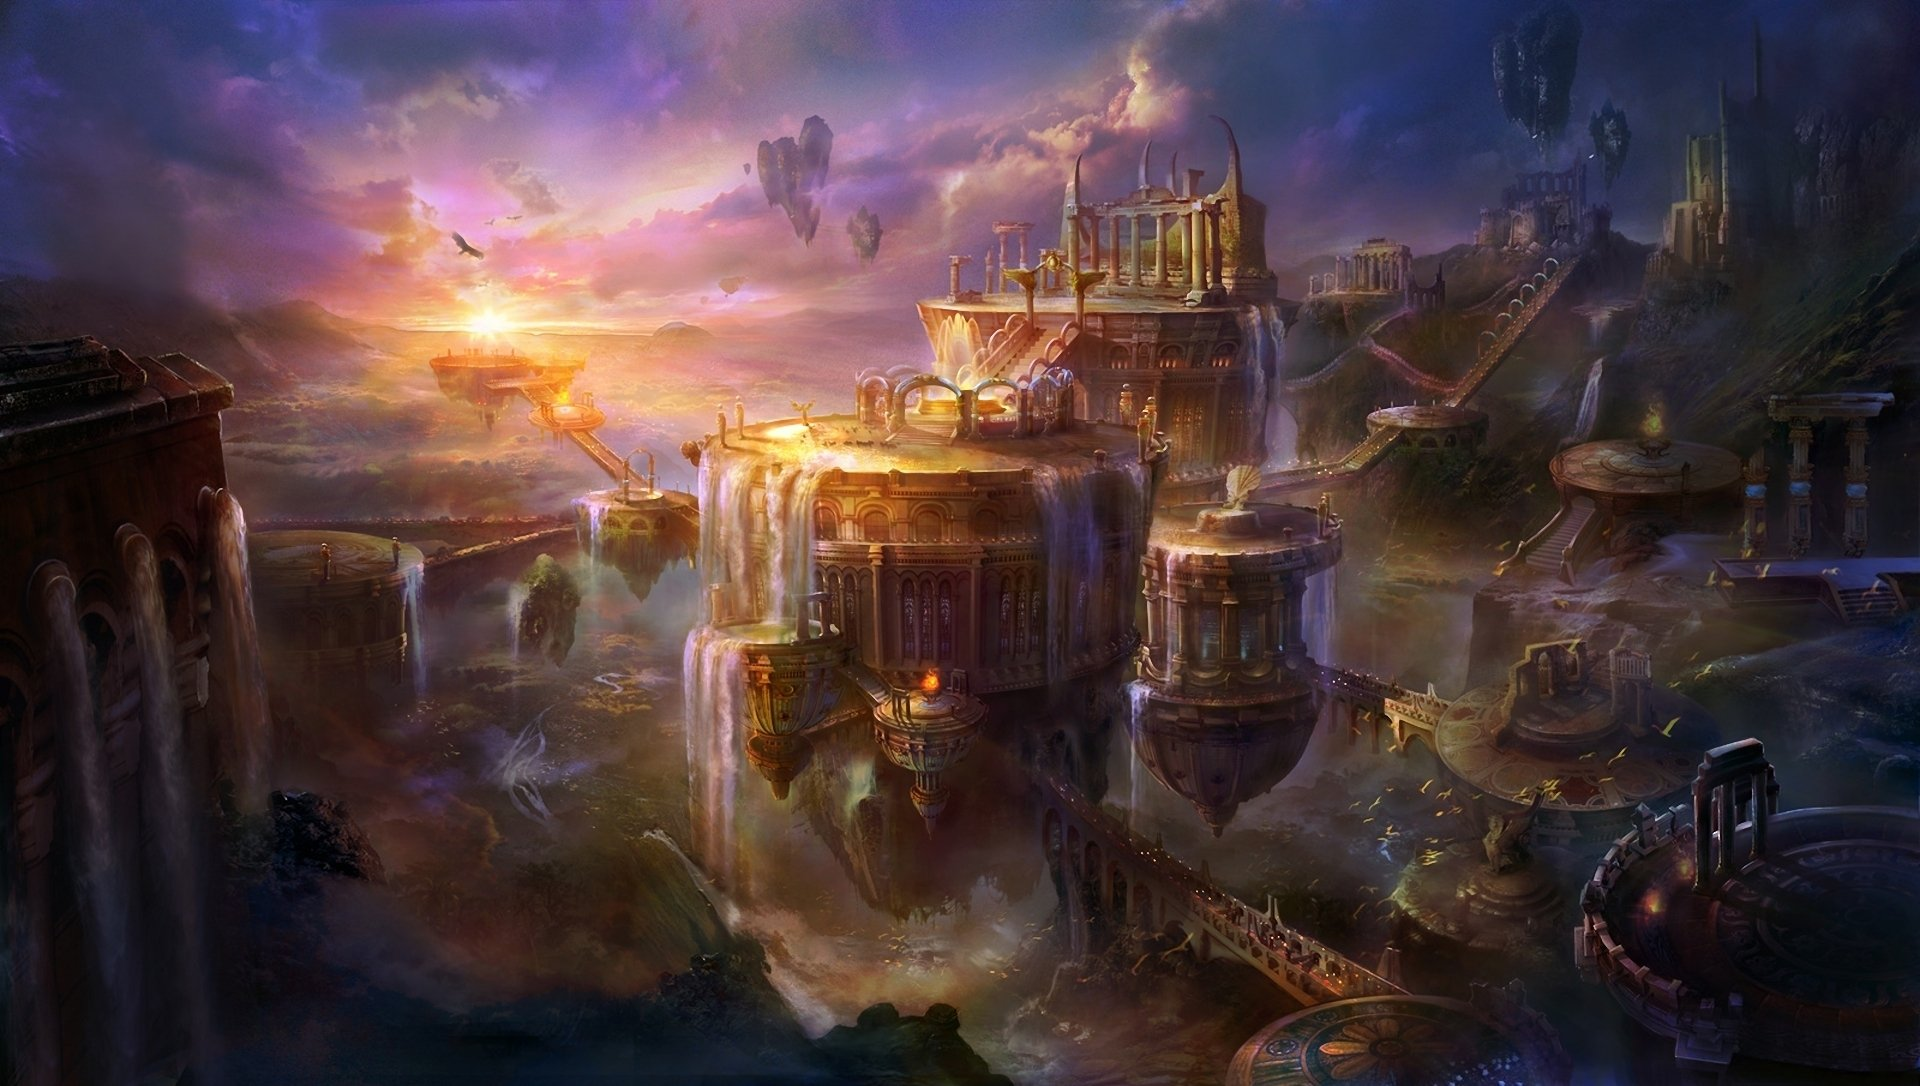 Fantasy - City  Wallpaper